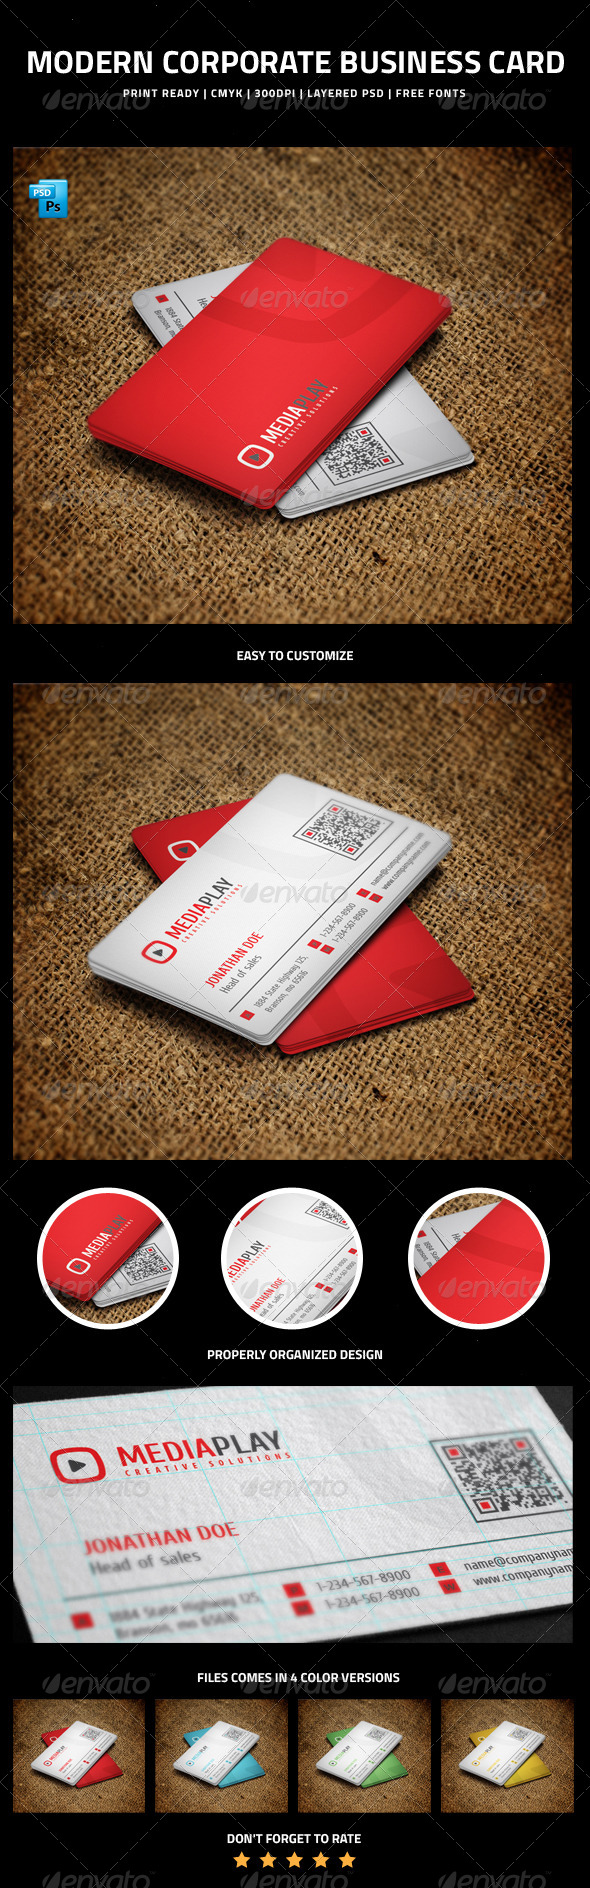 GraphicRiver Modern Corporate Business Card 6213450